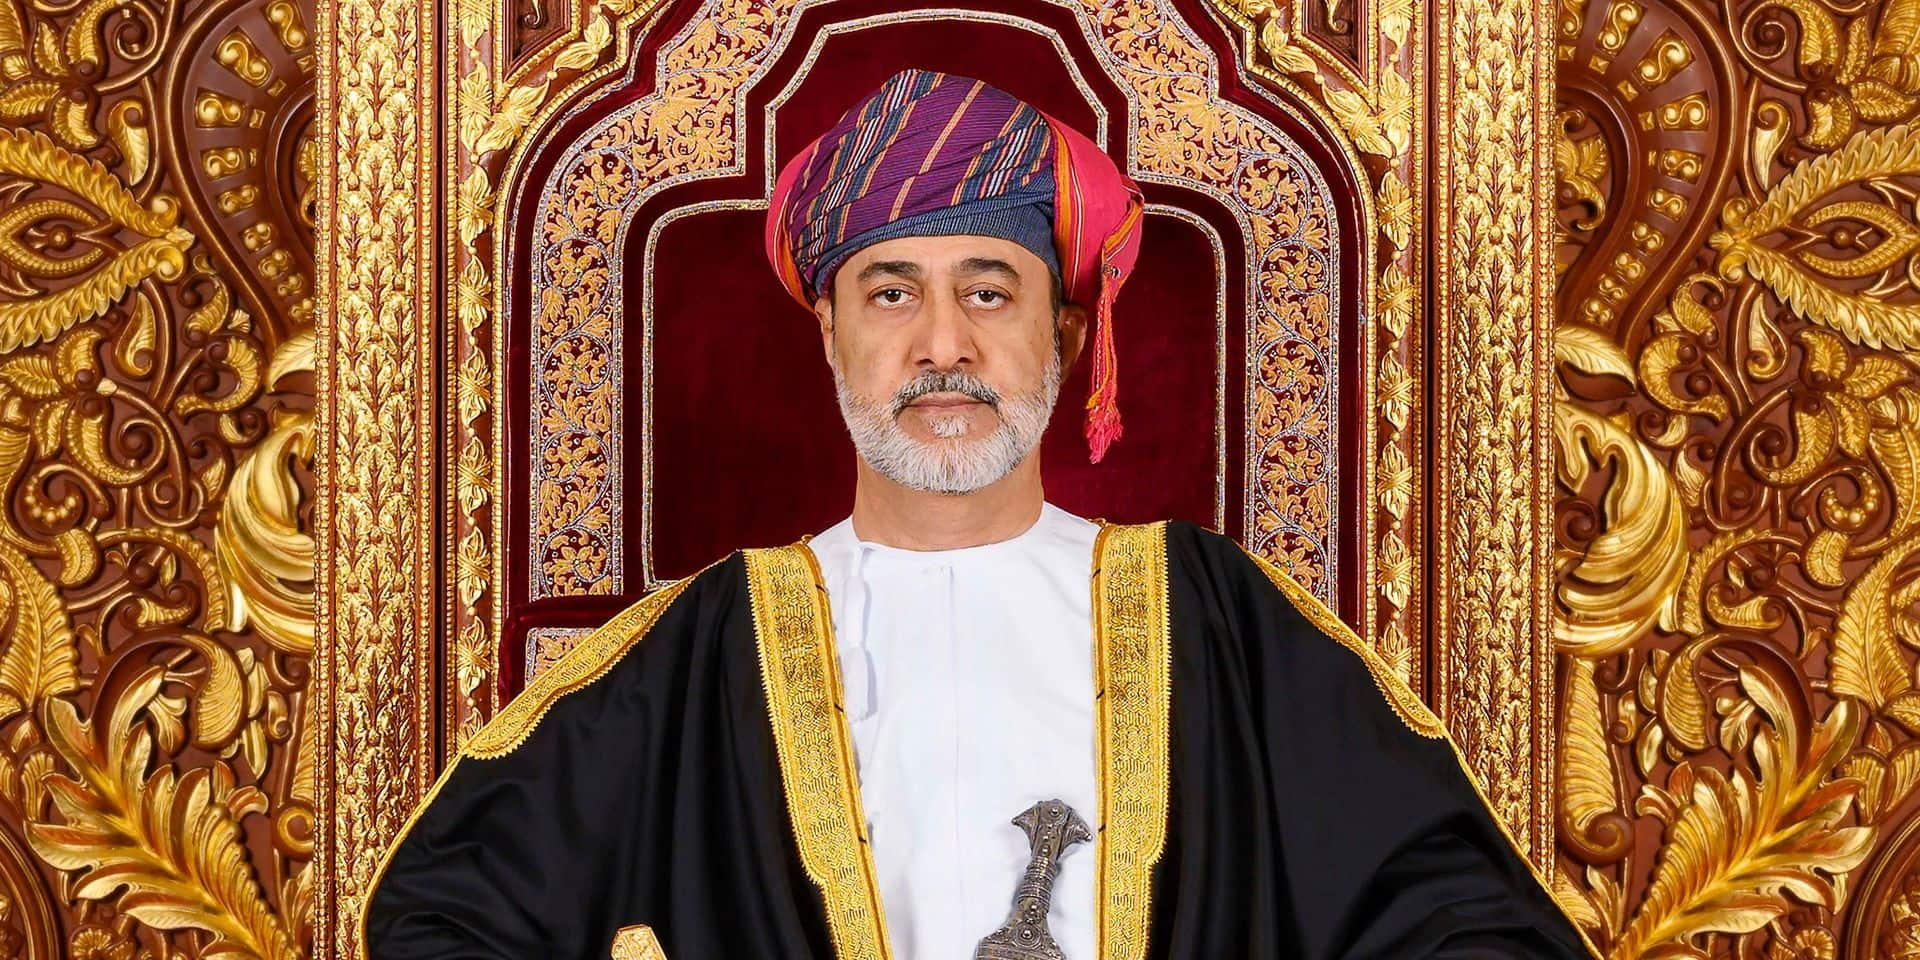 Prince Theyazin The Oman's first Crown Prince - Muscat